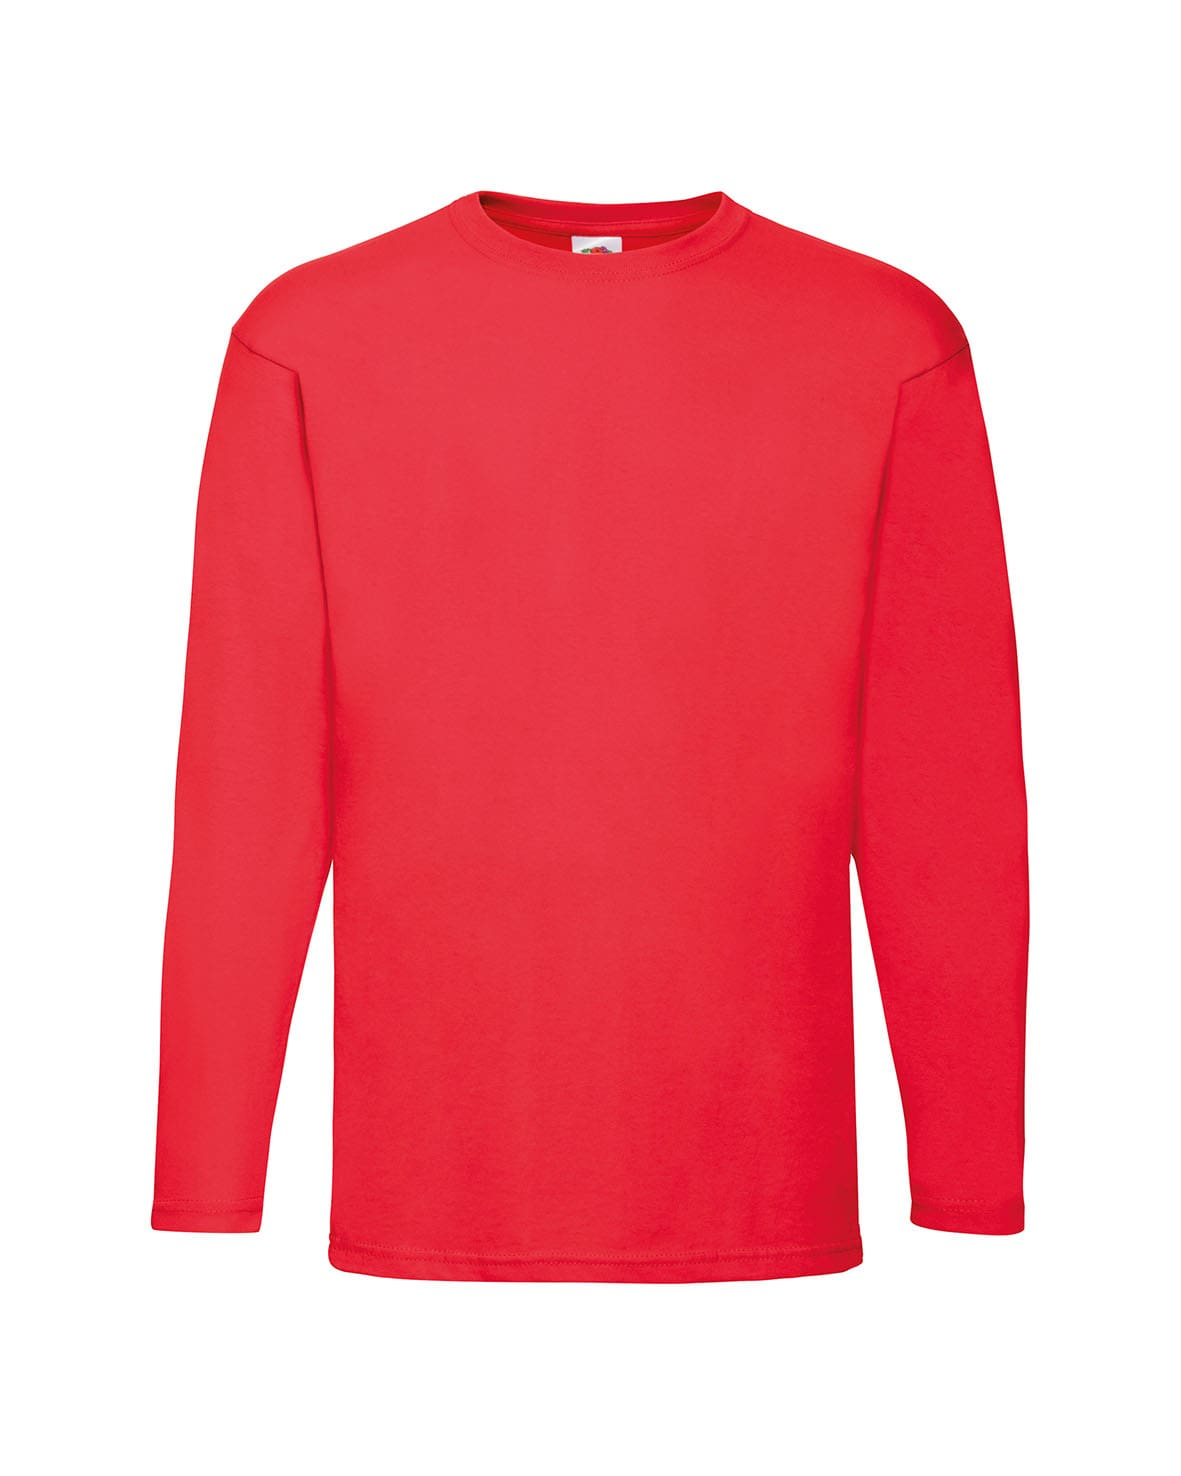 3-Colour Fruit Of The Loom Lady-Fit Valueweight Long Sleeve T-Shirt